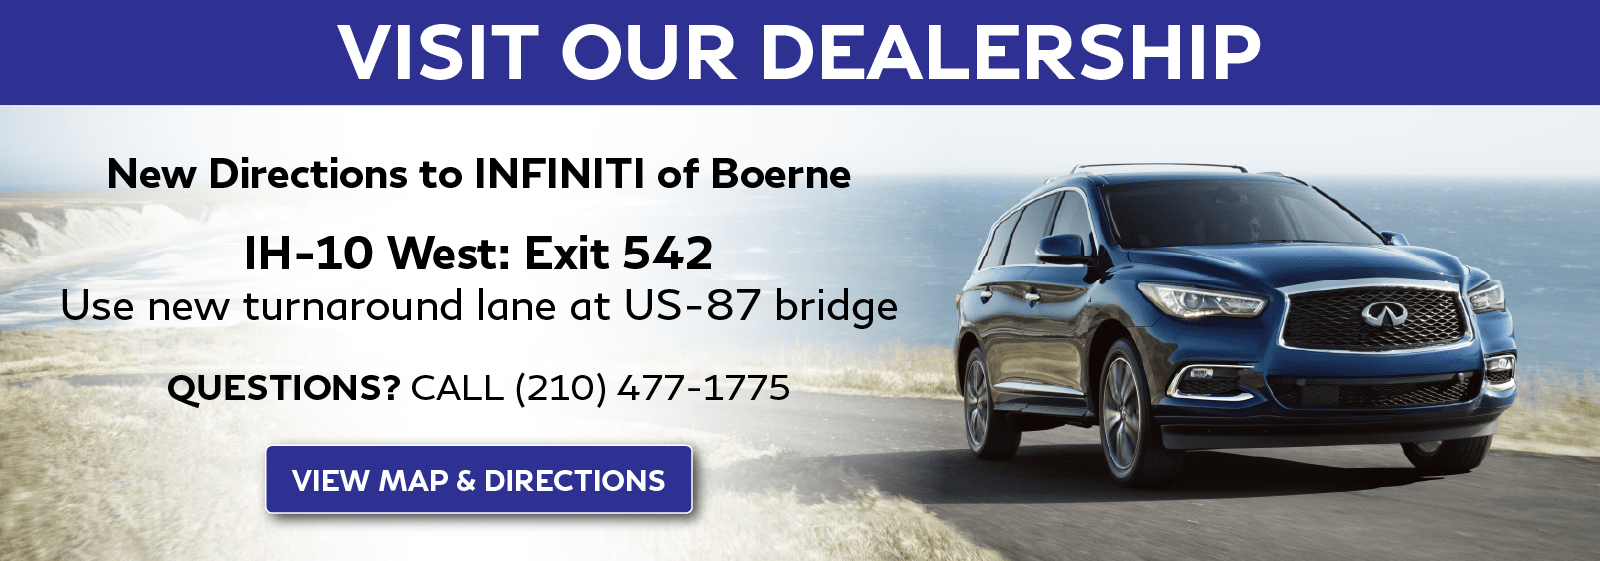 New Directions to INFINITI of Boerne